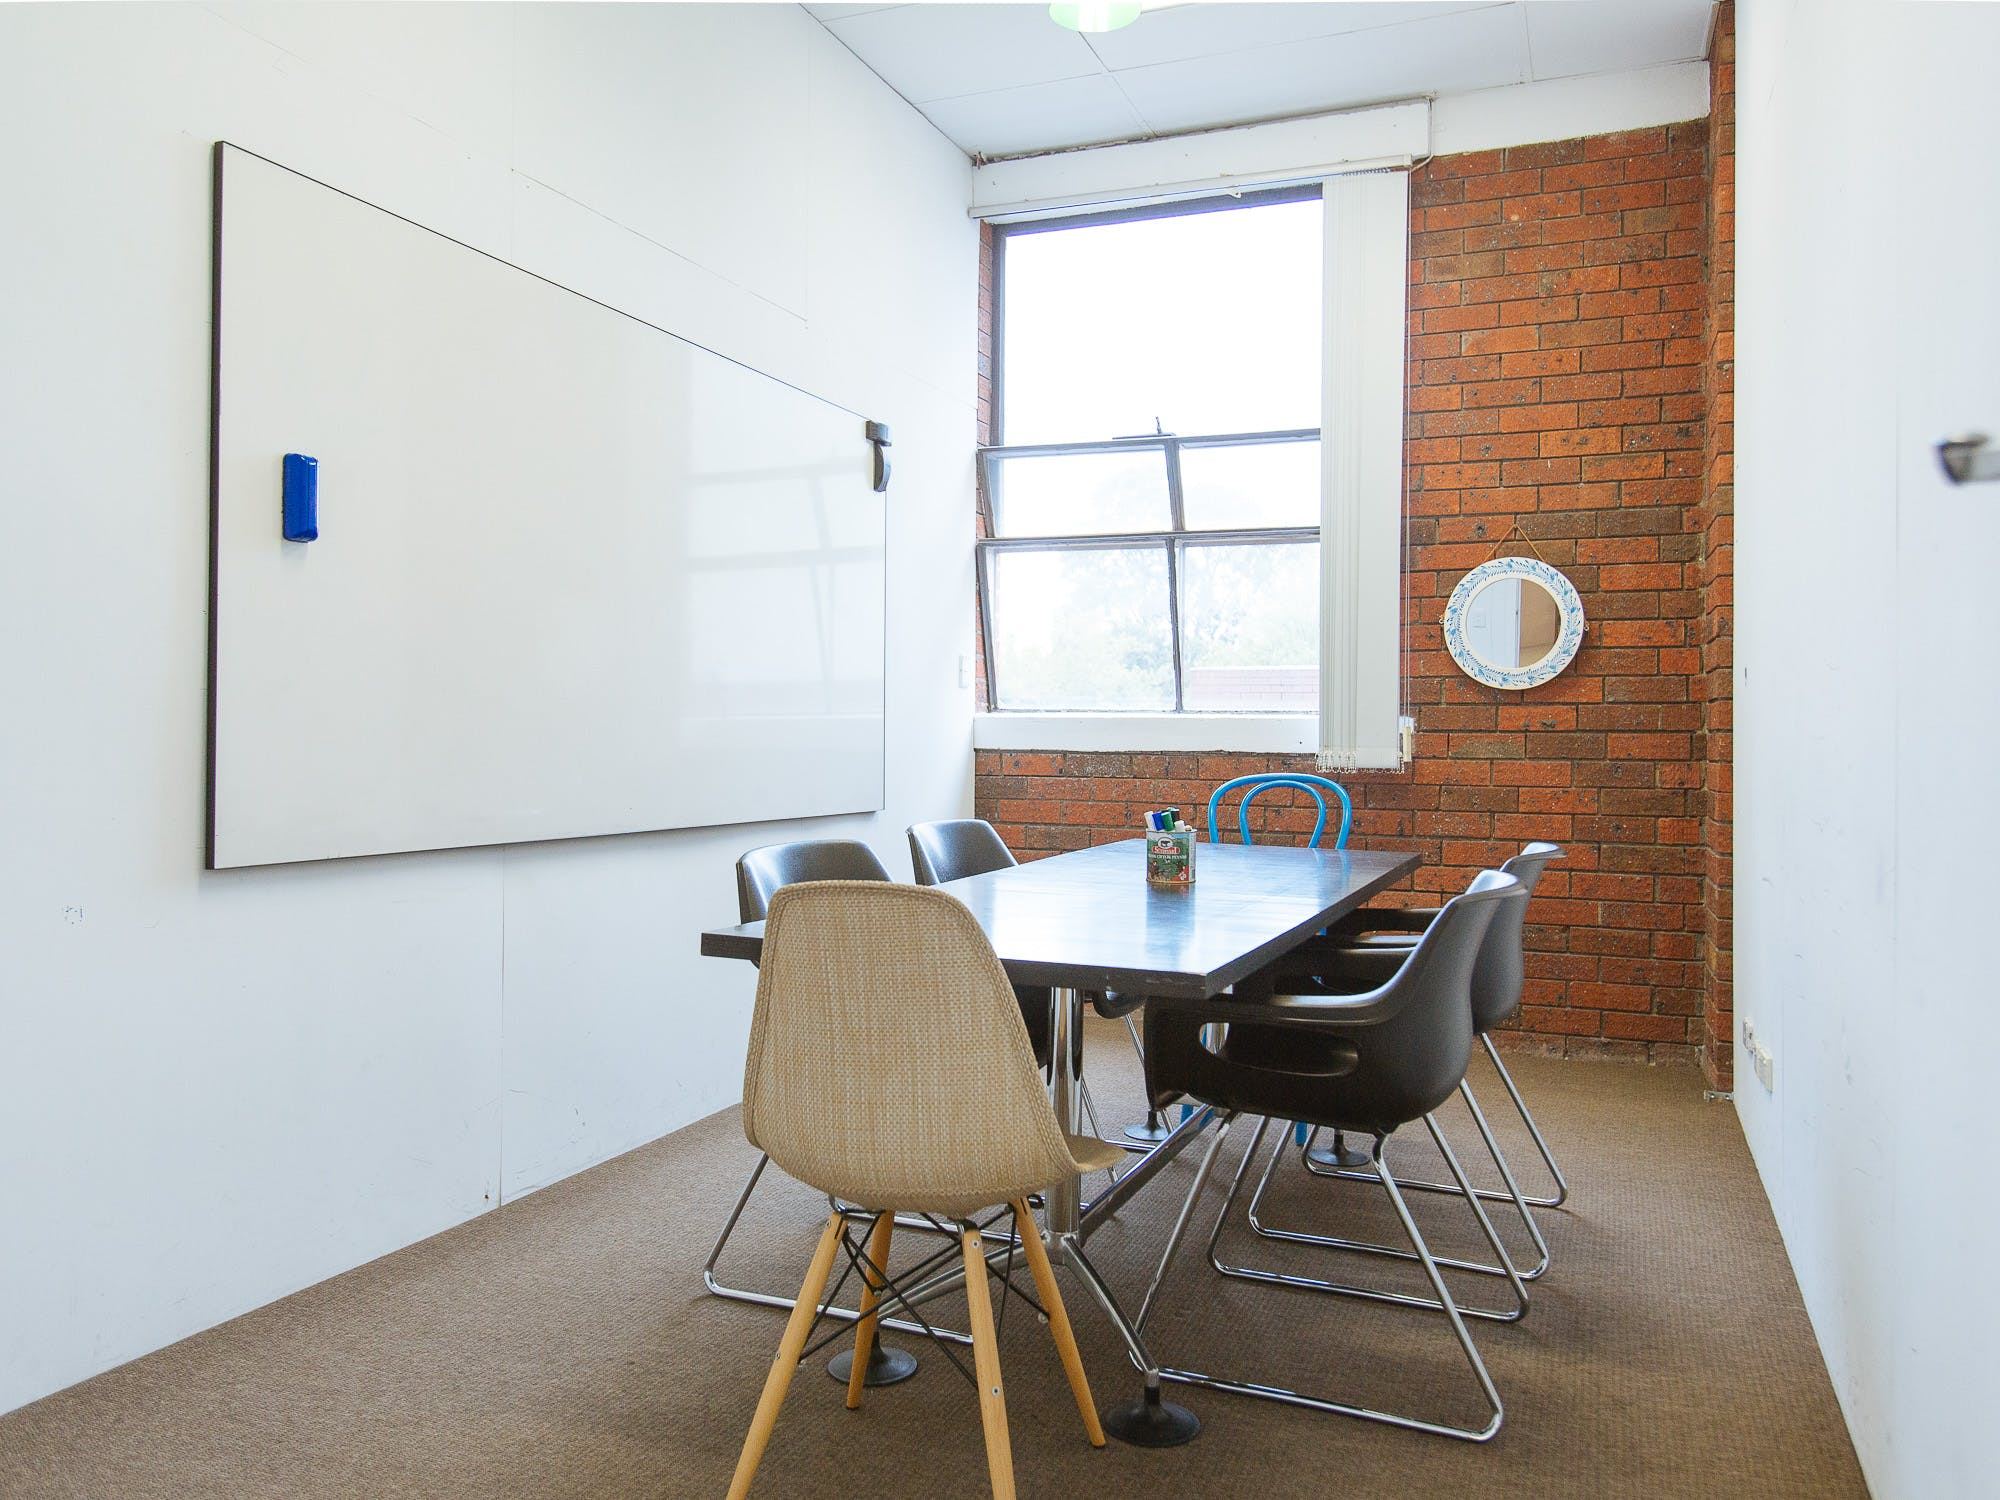 Boardroom 6, meeting room at Depo8 Co-Working, image 1